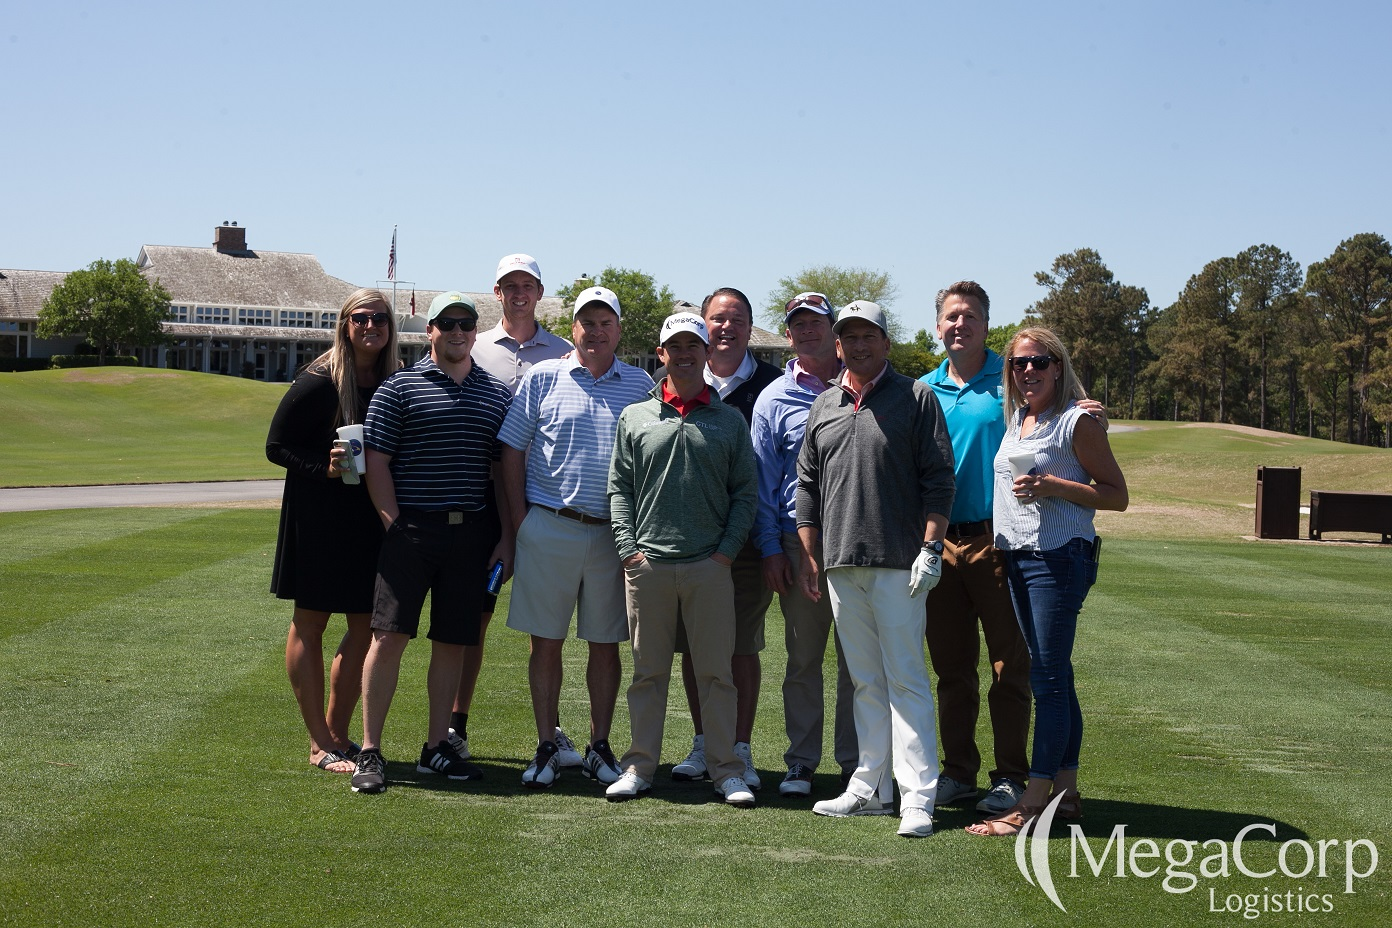 Brian posing with multiple smiling members of the MegaFamily on a golf course.